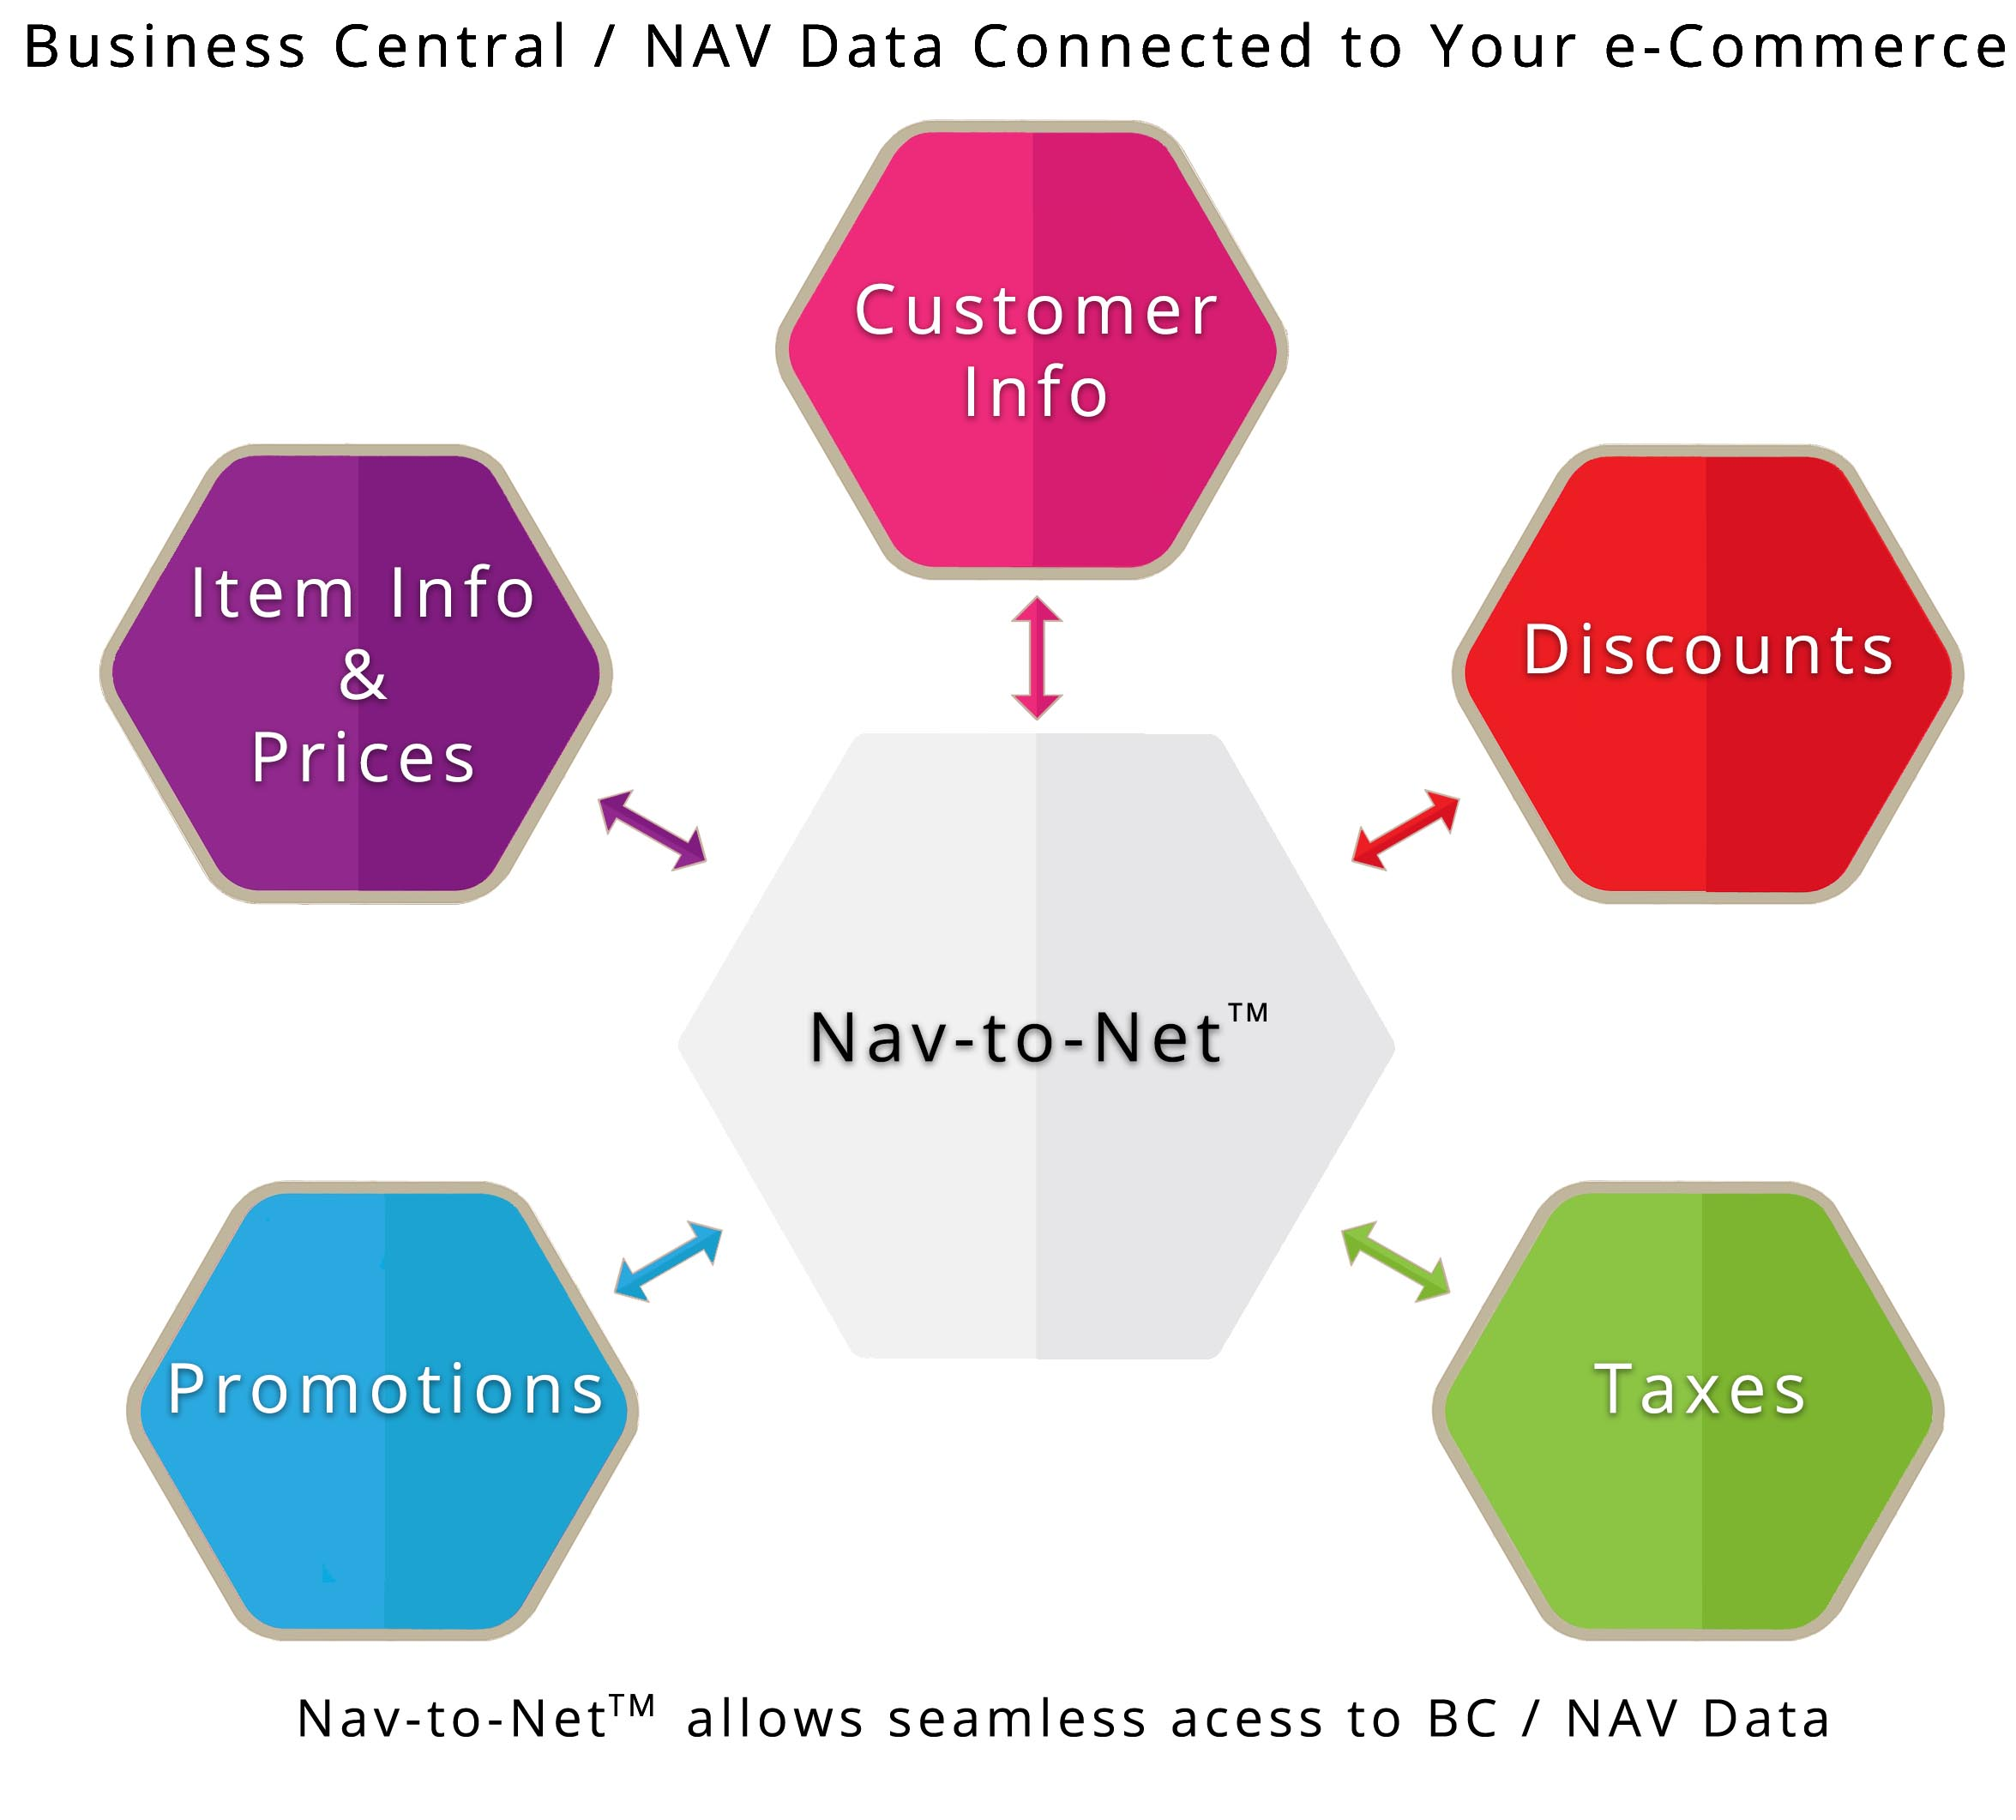 Nav Data Connected to your e-Commerce & Nav-to-Net™ allows seamless access to Nav Data